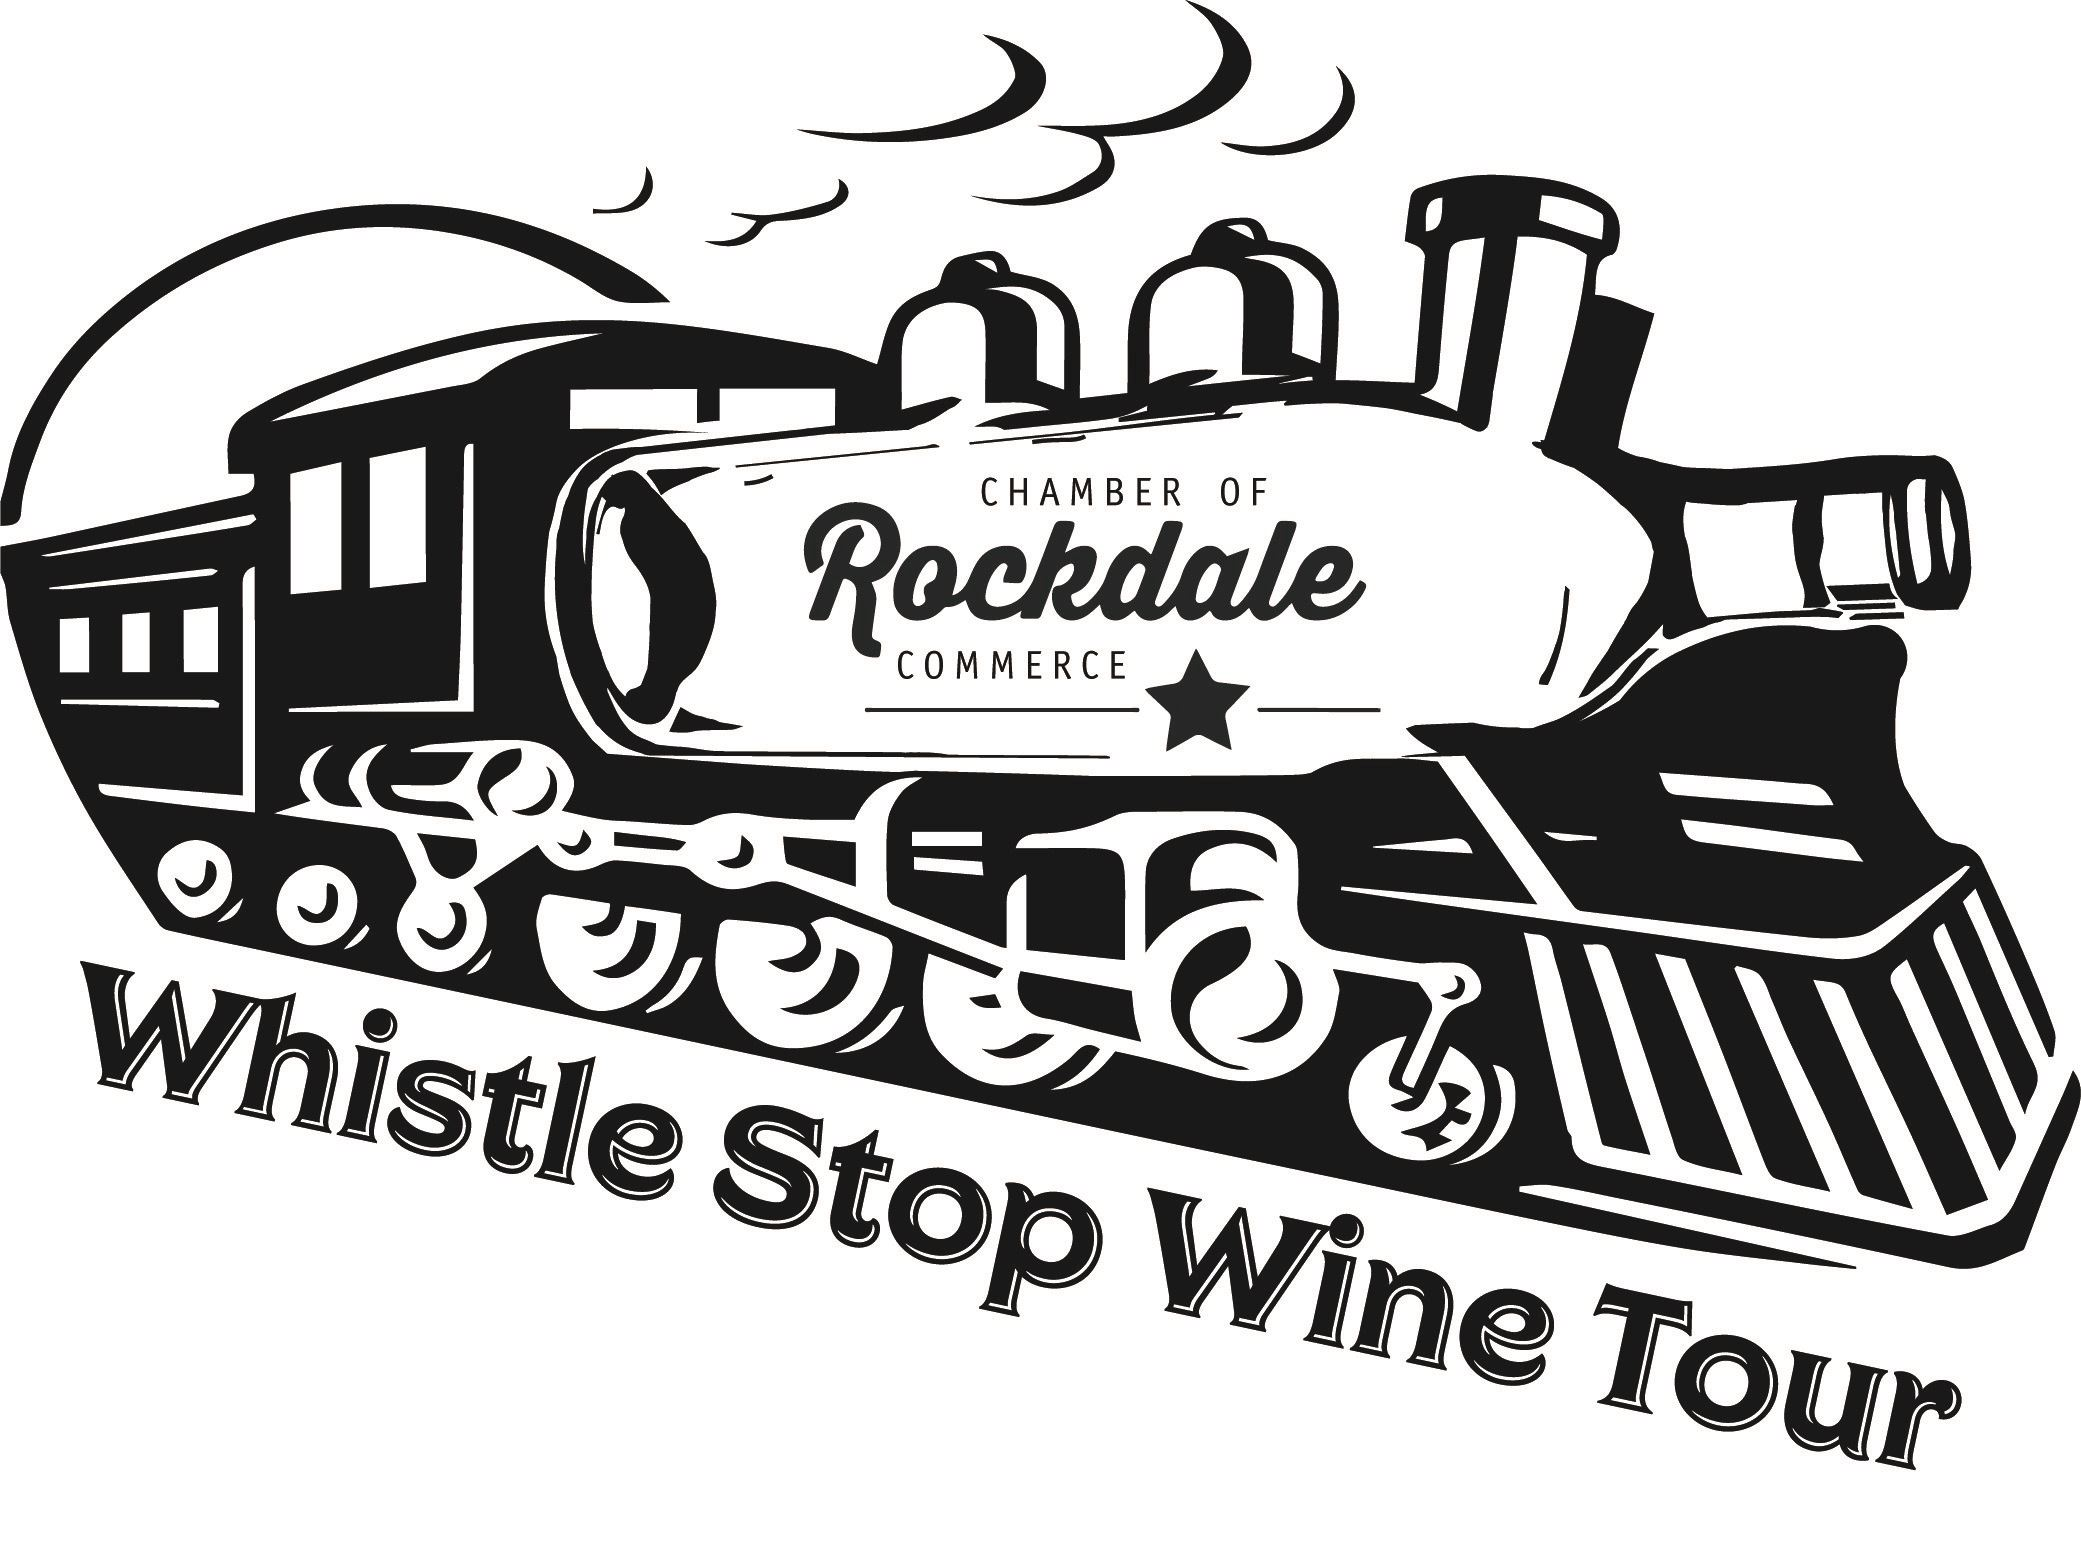 Rockdale Chamber of Commerce Whistle Stop Wine Tour Logo